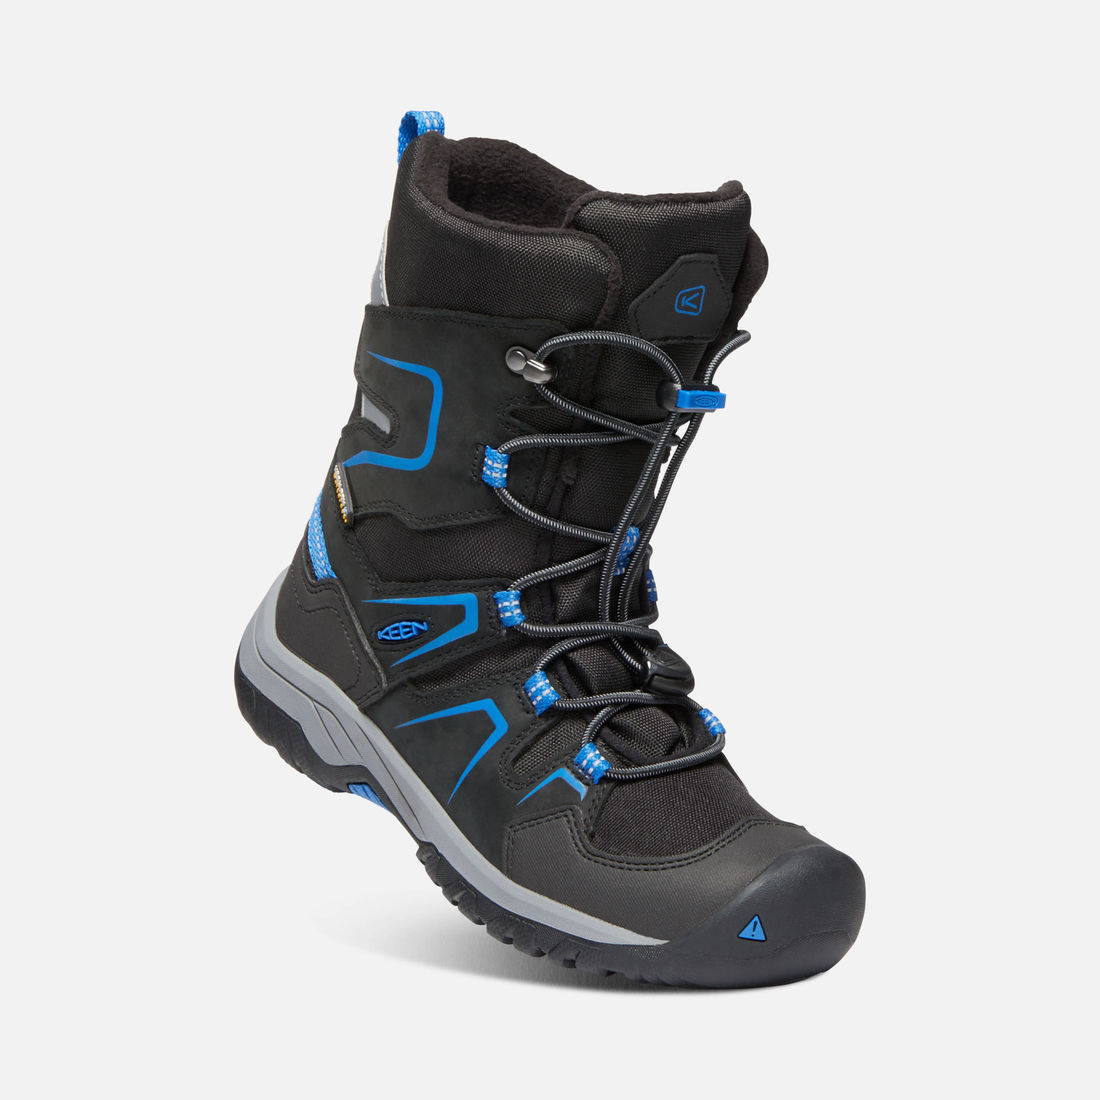 KEEN LEVO WATERPROOF WINTER BOOT černé vel.38